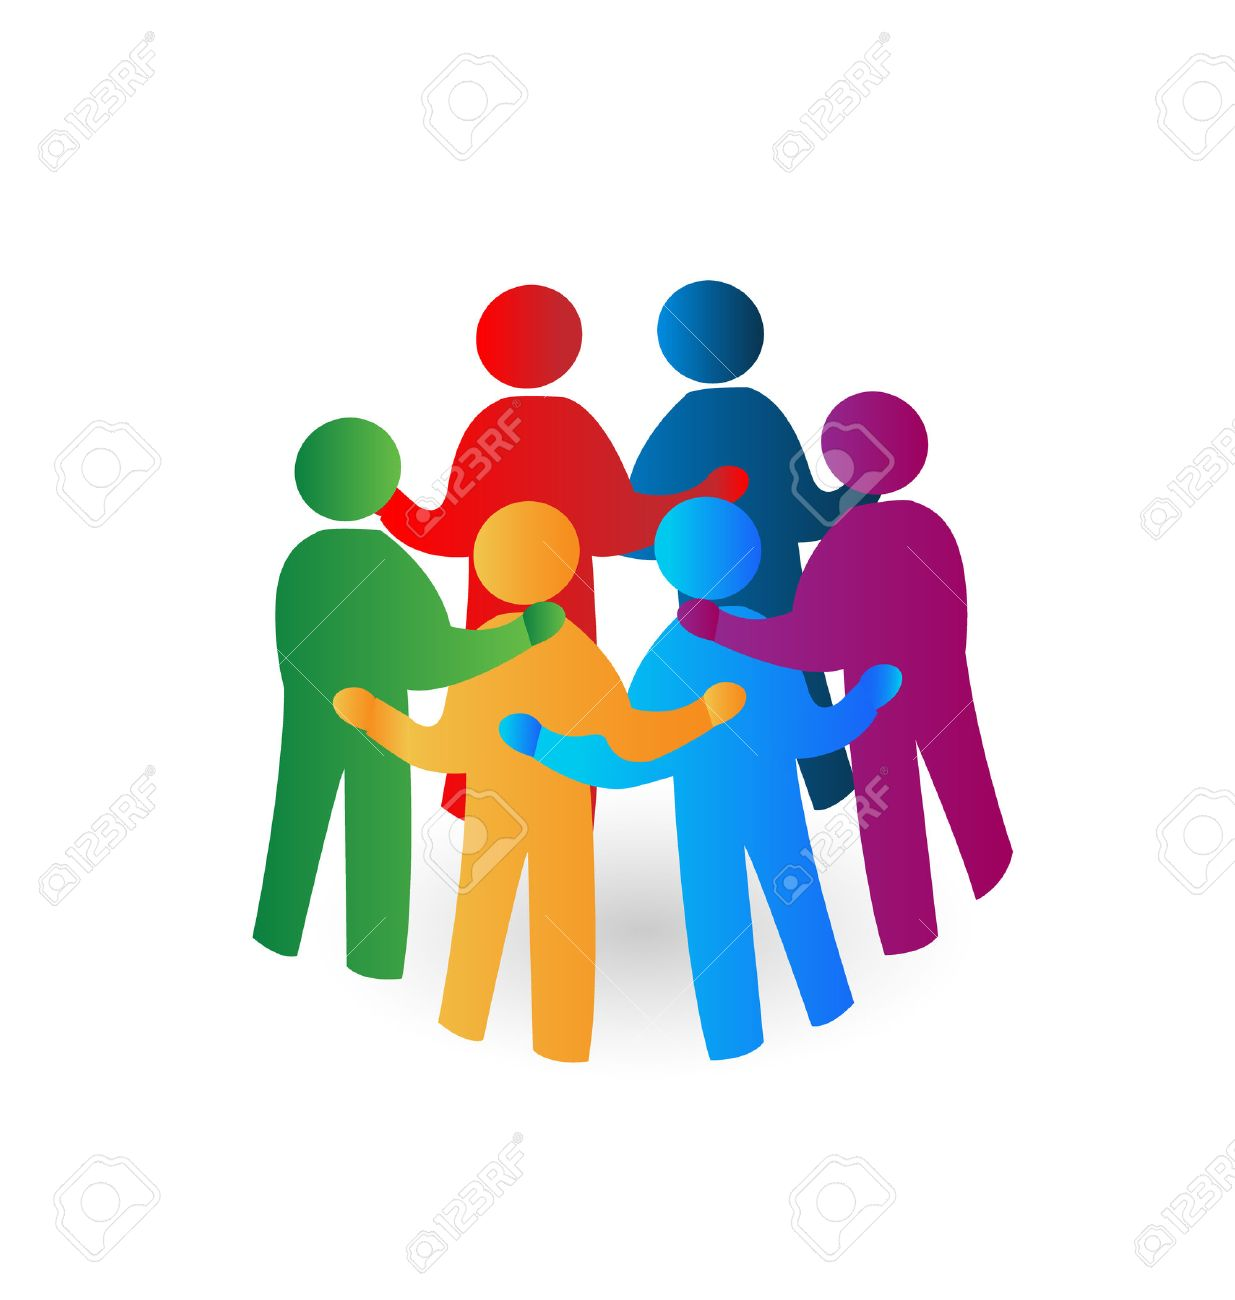 Teamwork meeting people icon vector Stock Vector - 24253917